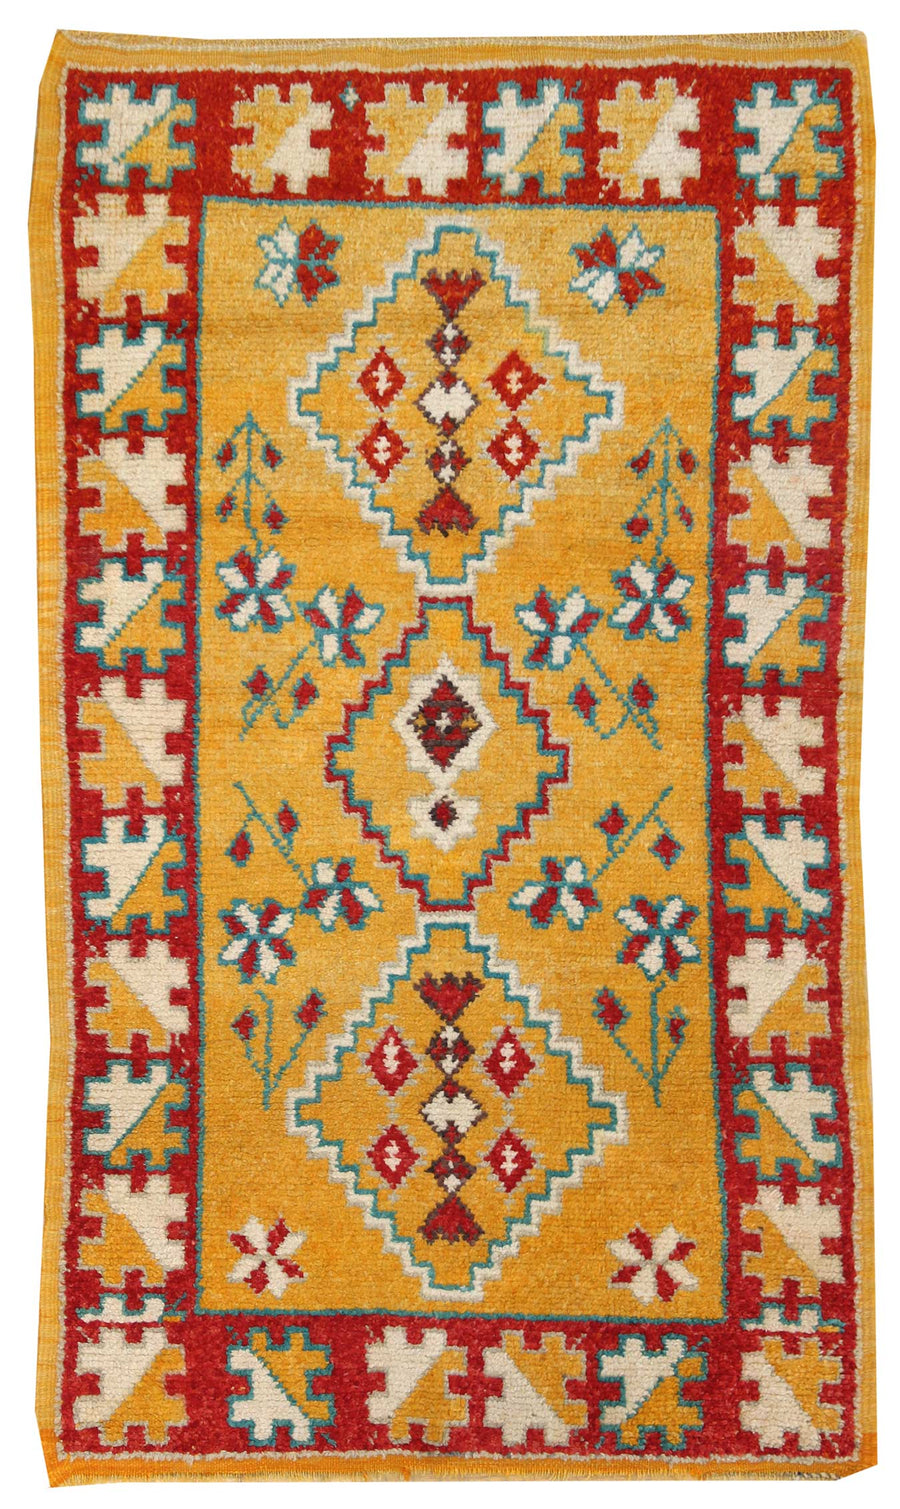 MOROCCAN HANDKNOTTED RUG, J50162